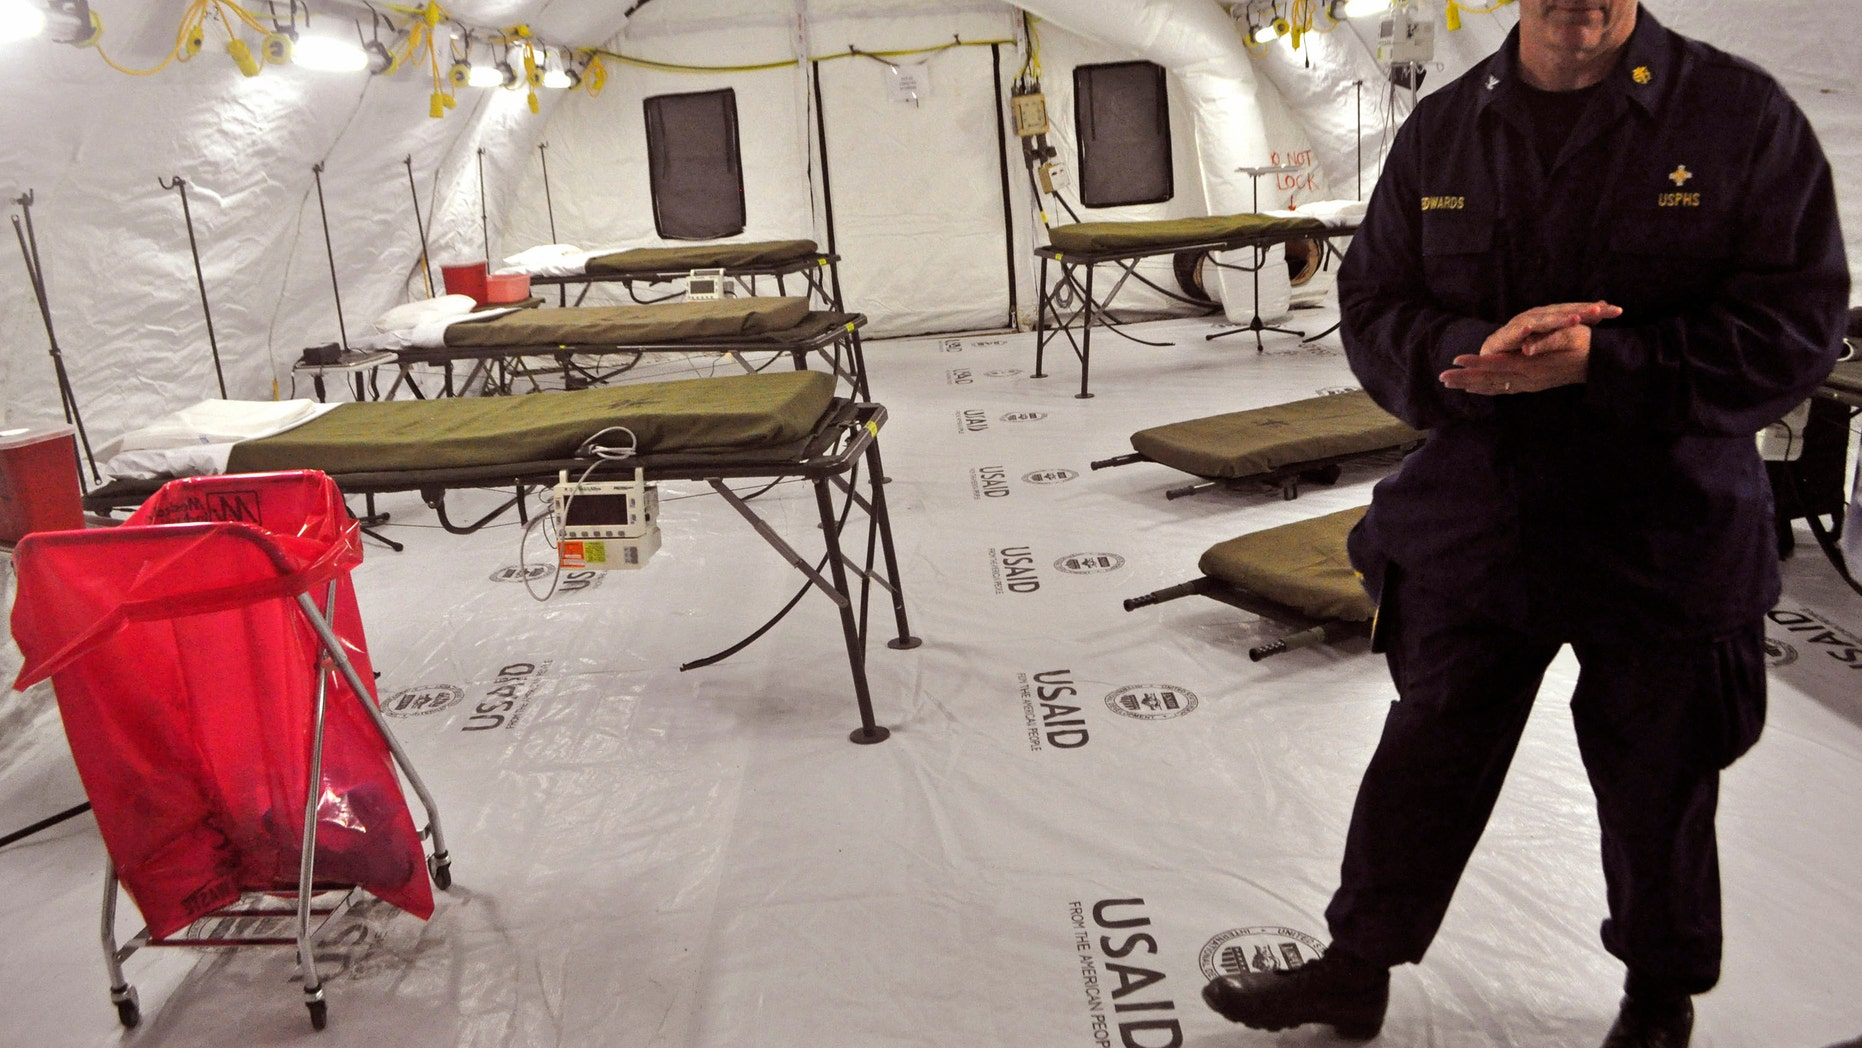 Nov. 5, 2014: In this file photo, on the outskirts of the city of Monrovia, Liberia, a health worker stands inside a medical tent that forms part of a new American clinic to be used for the treatment of people suffering from the Ebola virus.